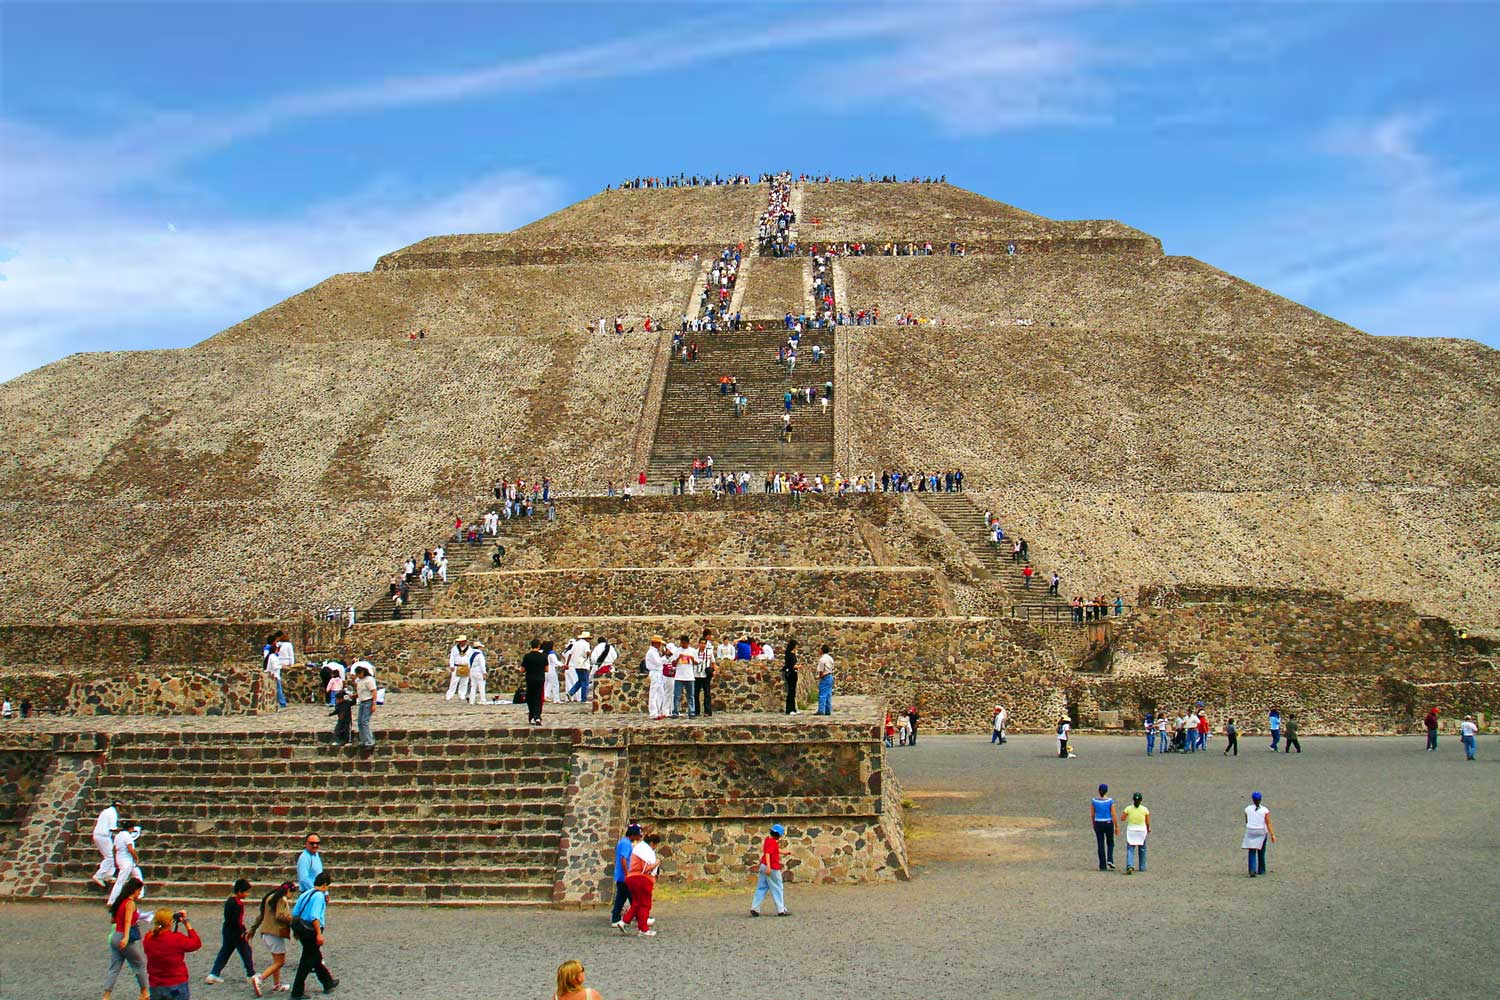 Take a day trip to Teotihuacan from Mexico City